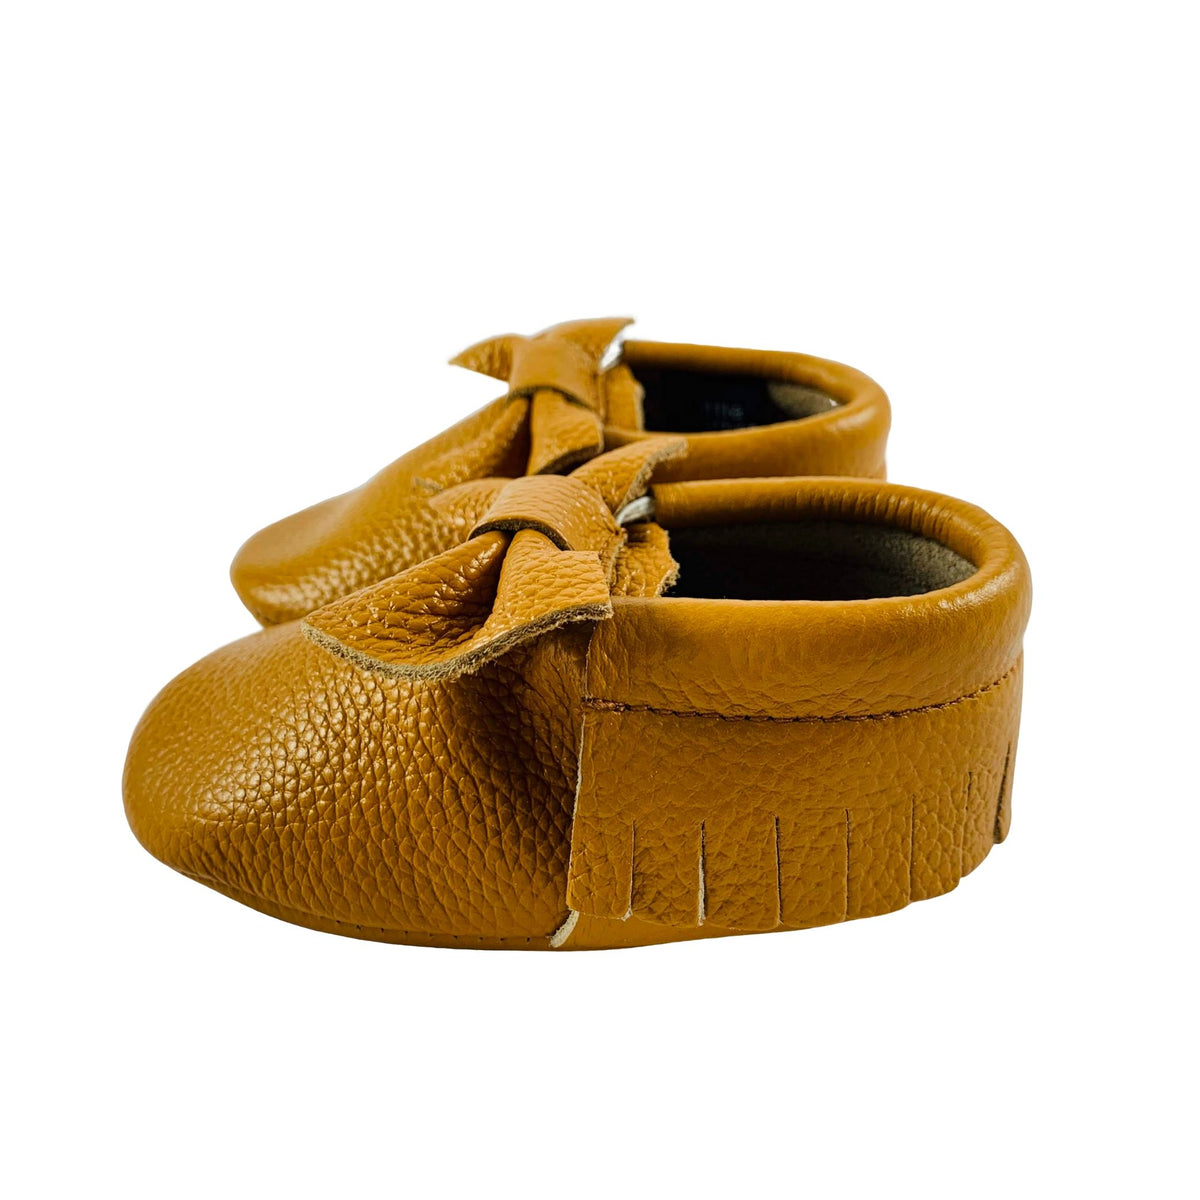 Grippies-Toddler-Shoes-Caramel-Bow-Side-view.